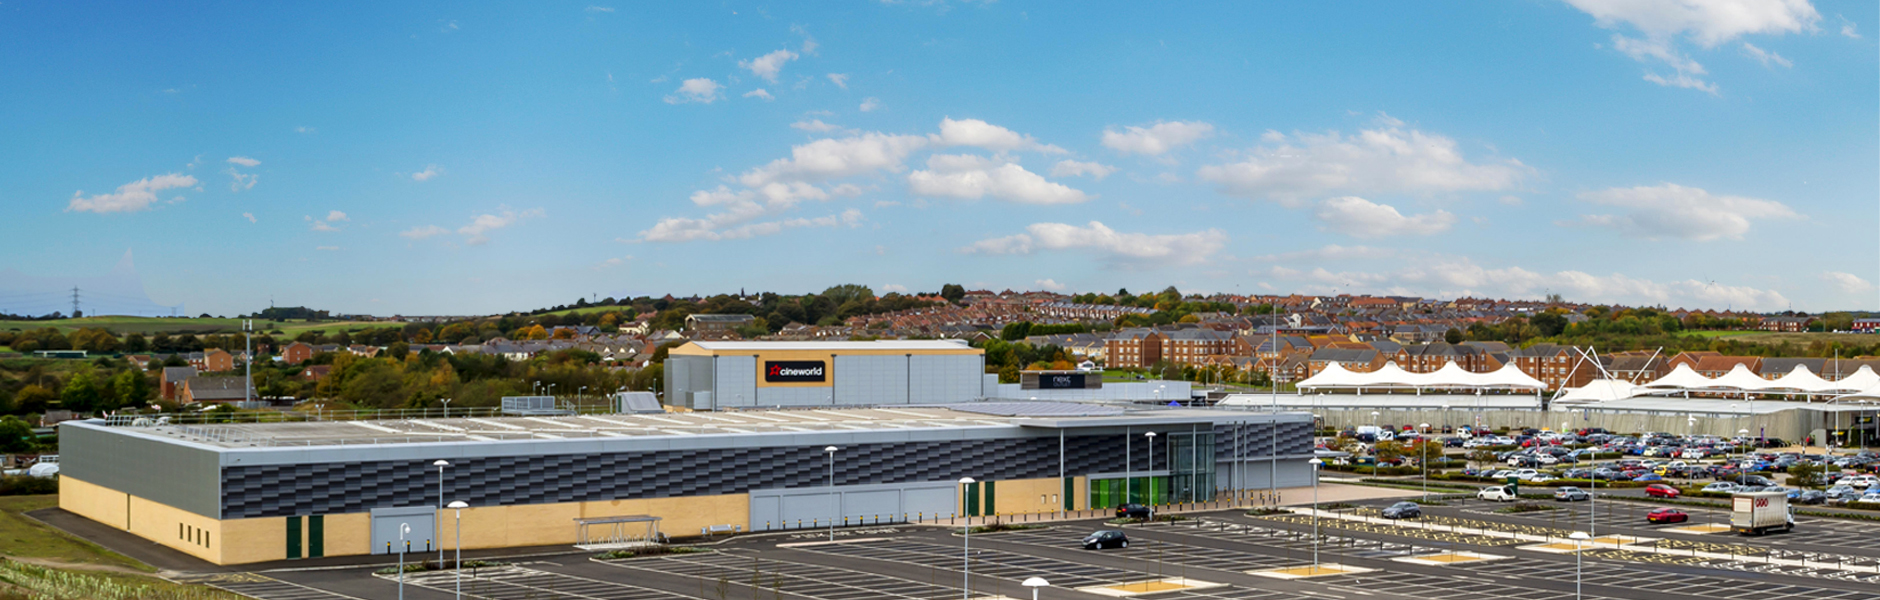 Morrisons is opening at Dalton Park